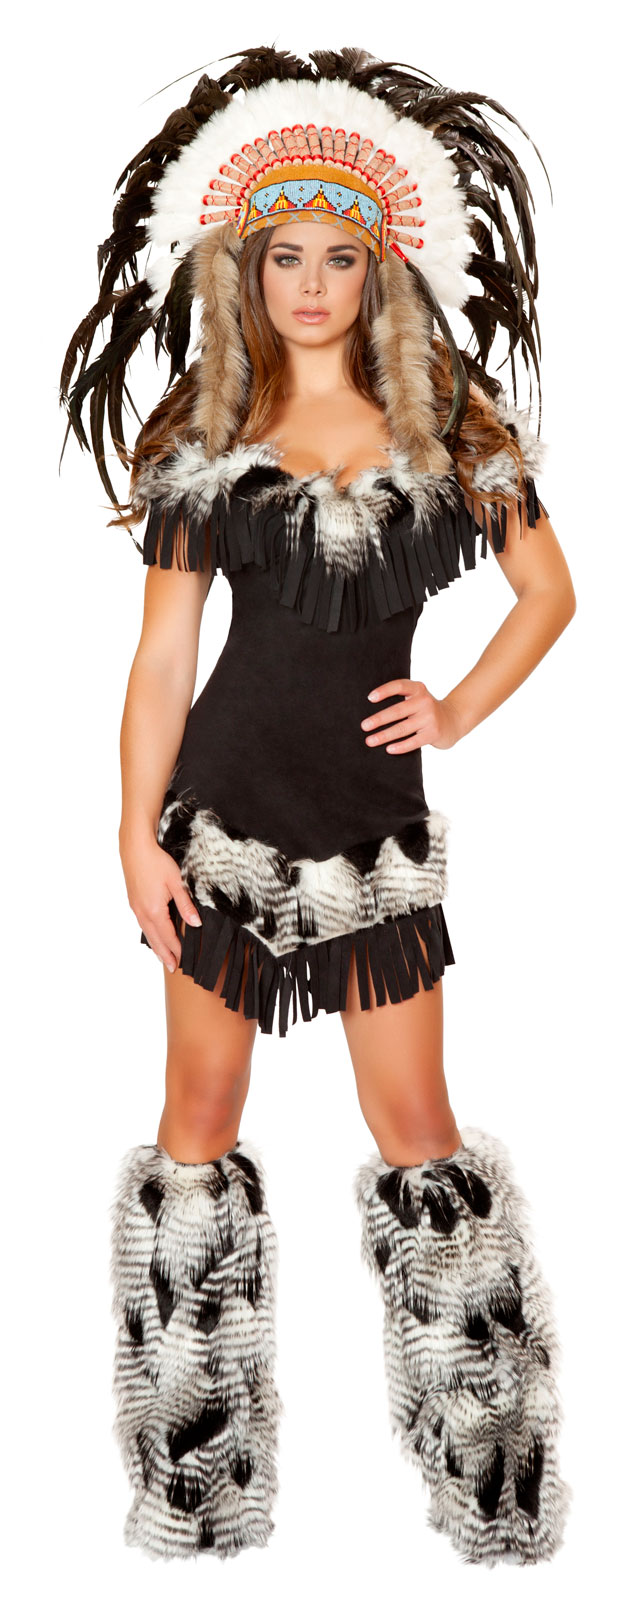 Native American Indian Costumes - HalloweenCostumes.com